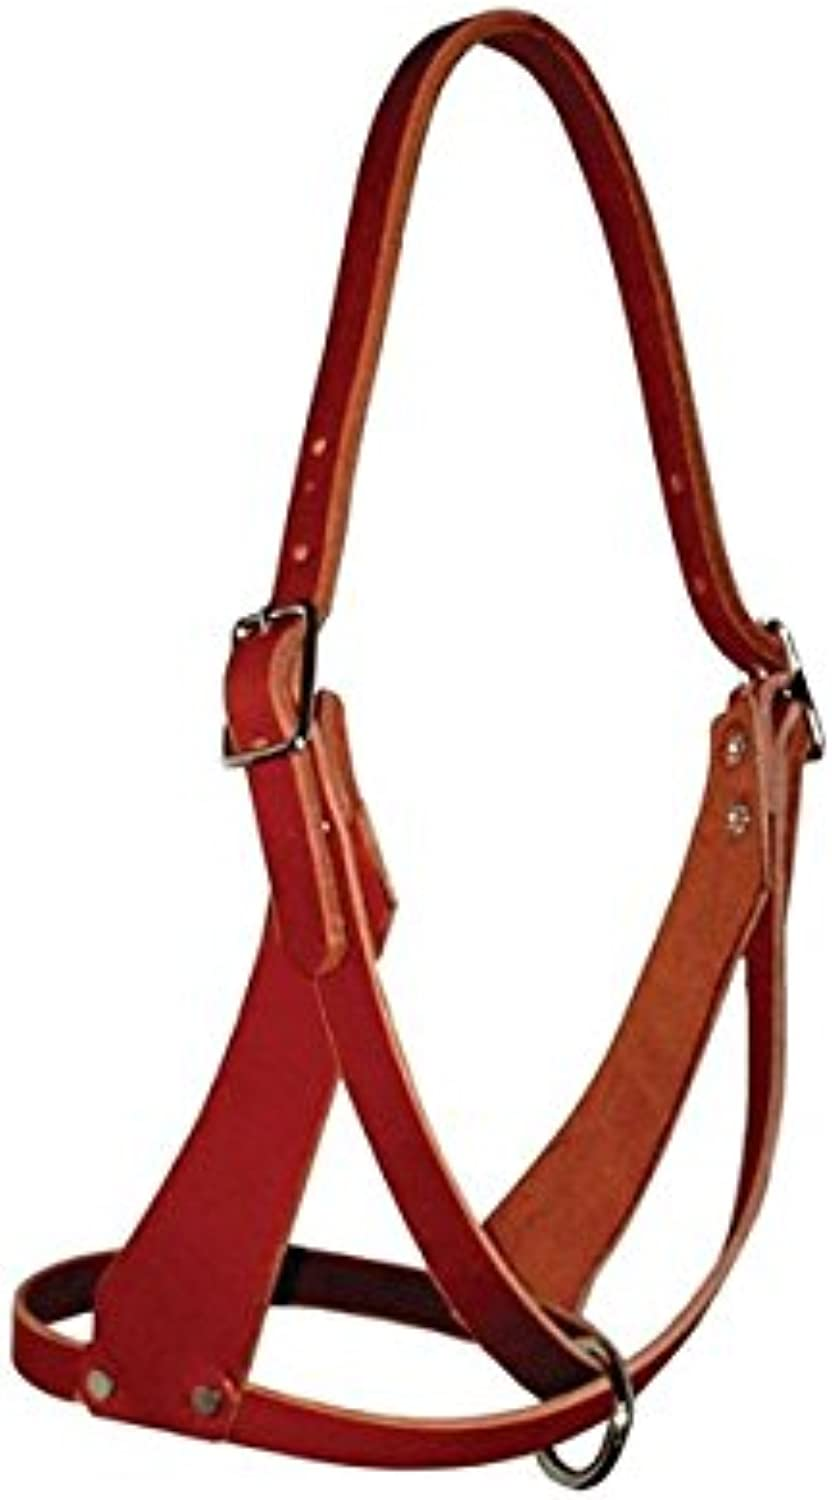 Amish USA Horse Tack Figure Eight Halter 5 8 Wide Full 975N080F